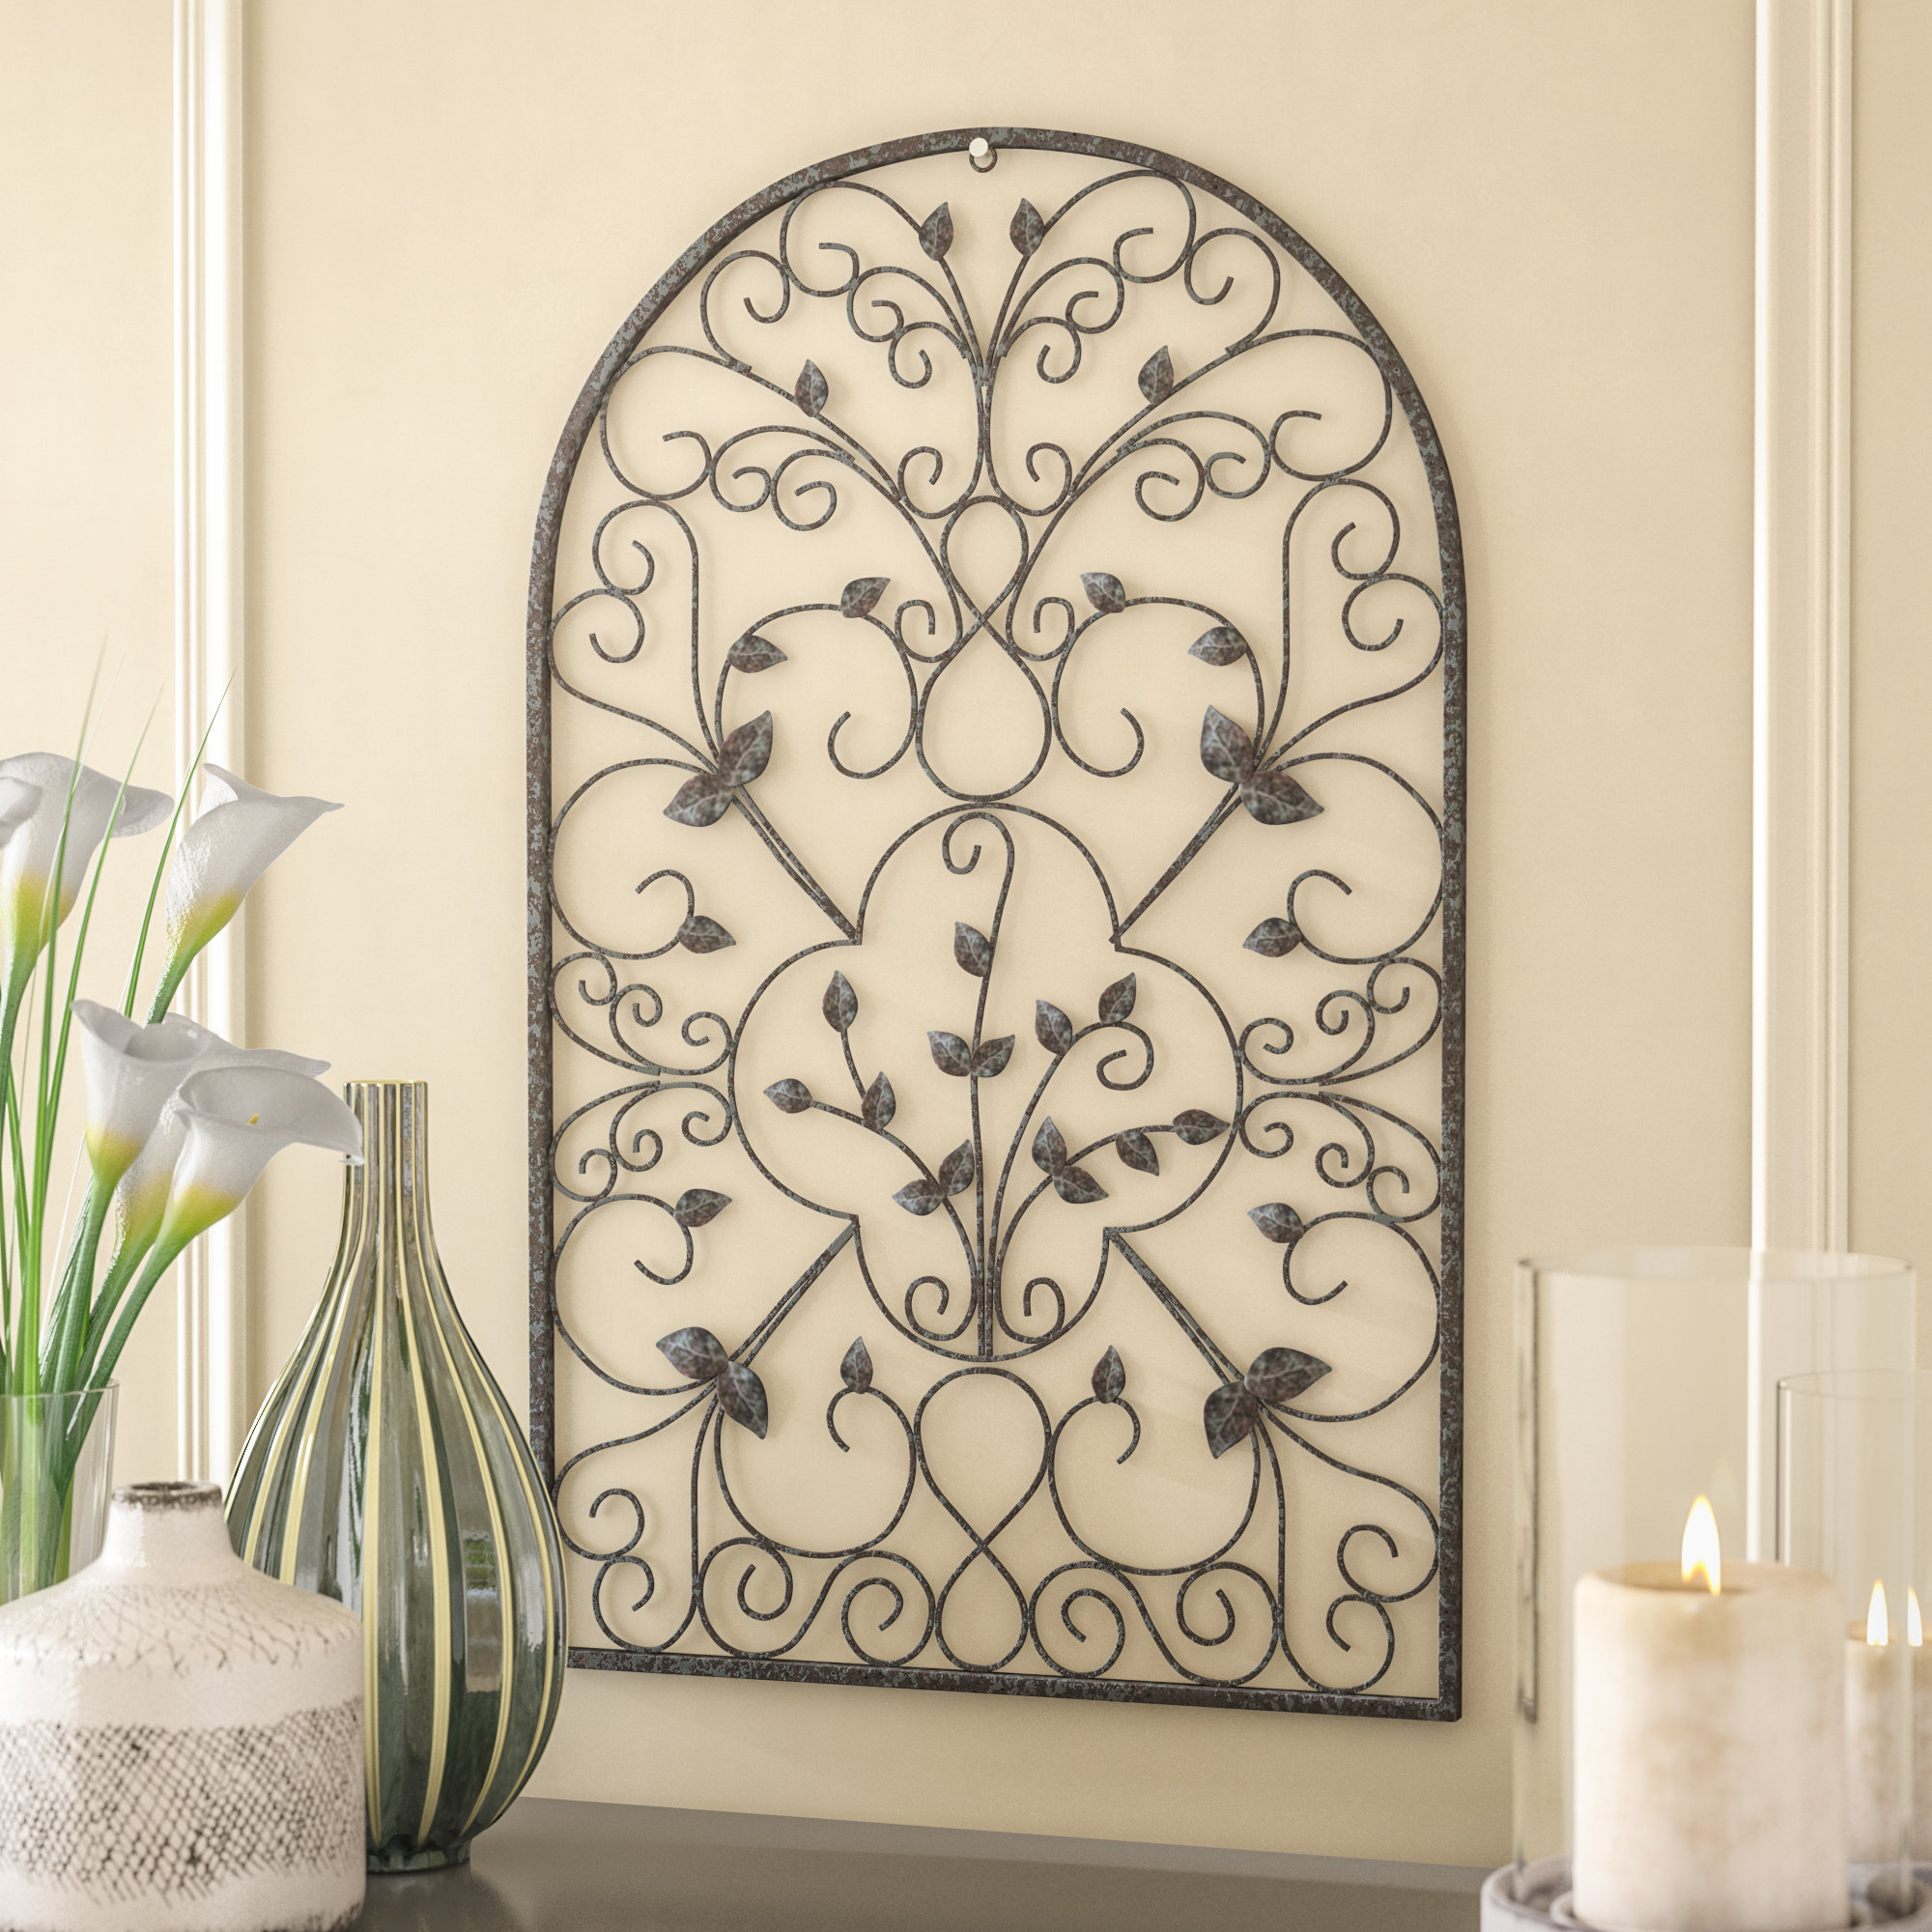 Most Recently Released Spanish Ornamental Wall Decor Regarding Fleur De Lis Living Spanish Ornamental Wall Décor & Reviews (Gallery 1 of 20)